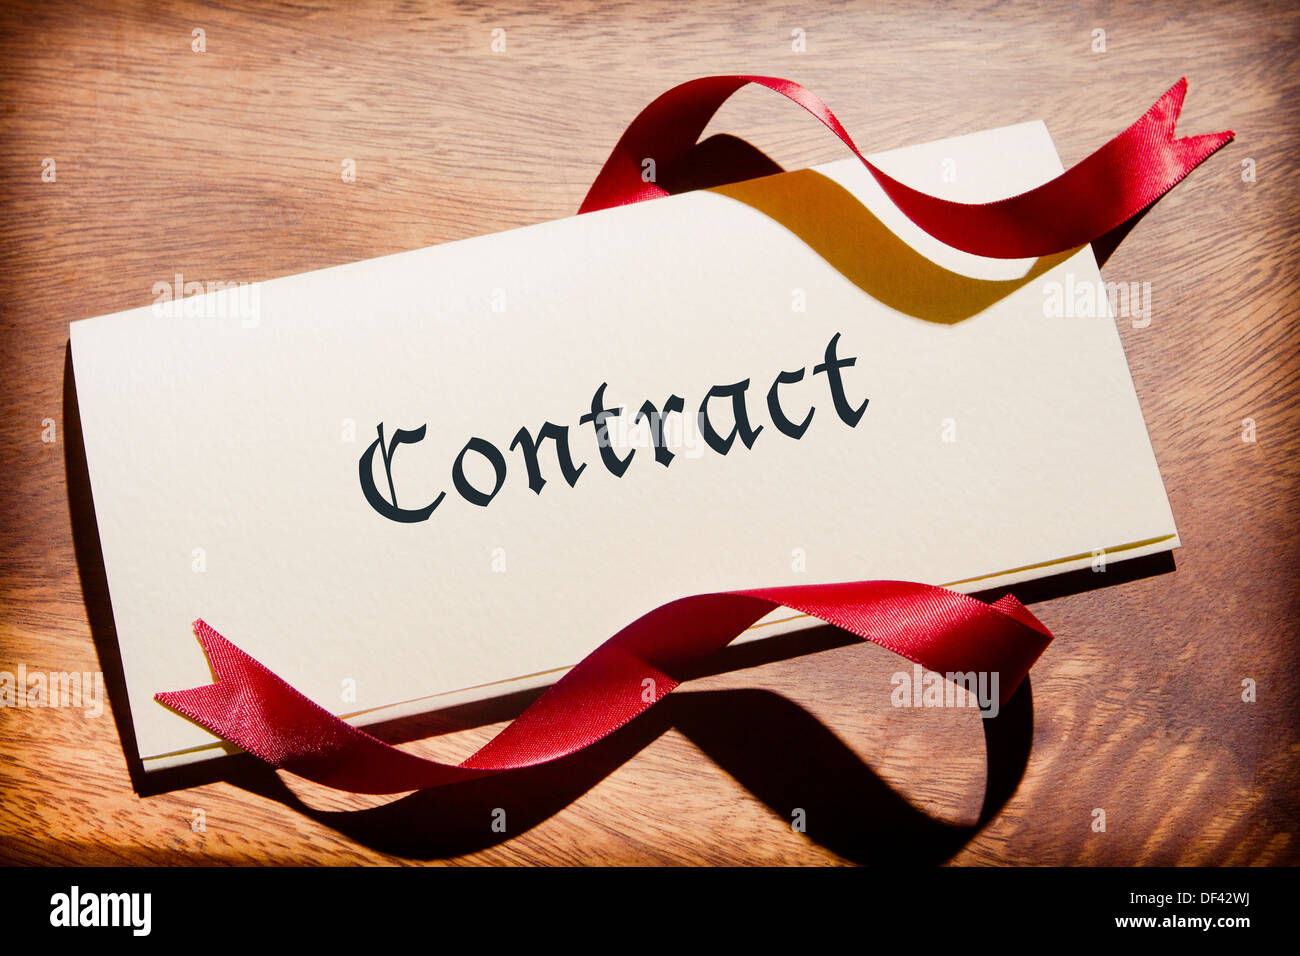 Contract Document On Wooden Desk - Stock Image